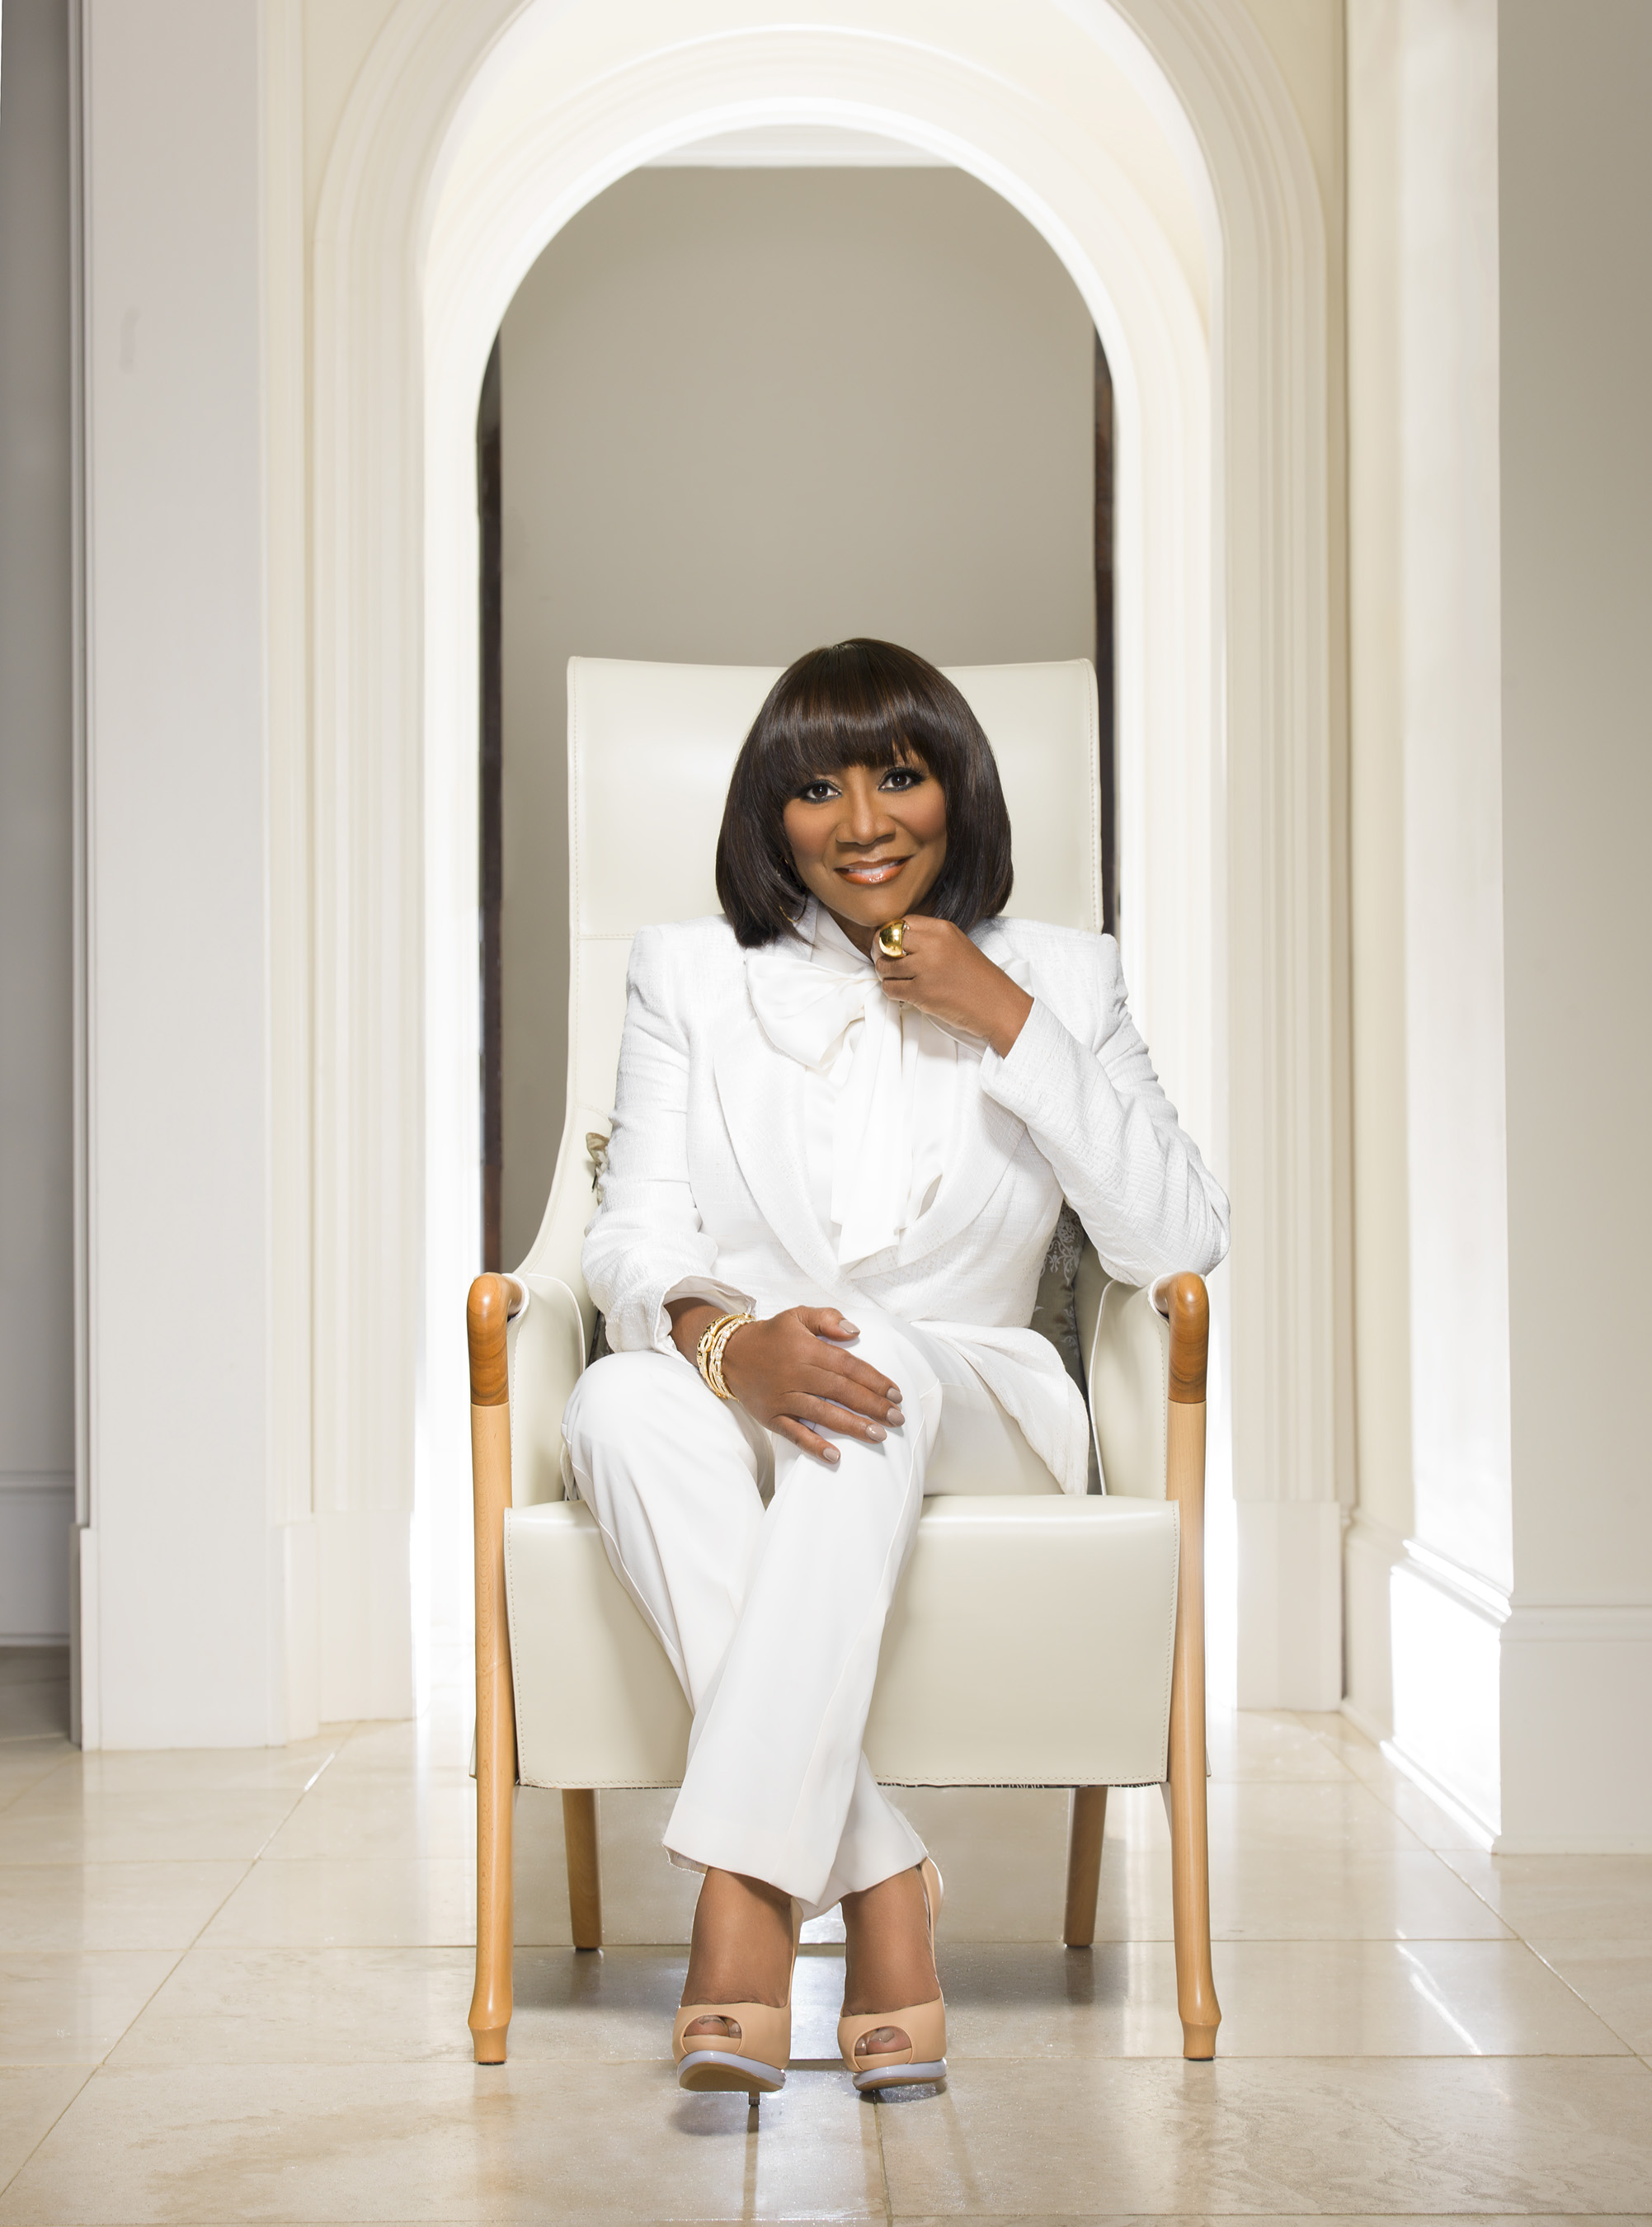 Grammy Award-winning soul legend Patti LaBelle will perform from Philadelphia to celebrate the nation's 244th birthday on PBS' A CAPITOL FOURTH Saturday, July 4, 2020. Photo Credit: Derek Blanks